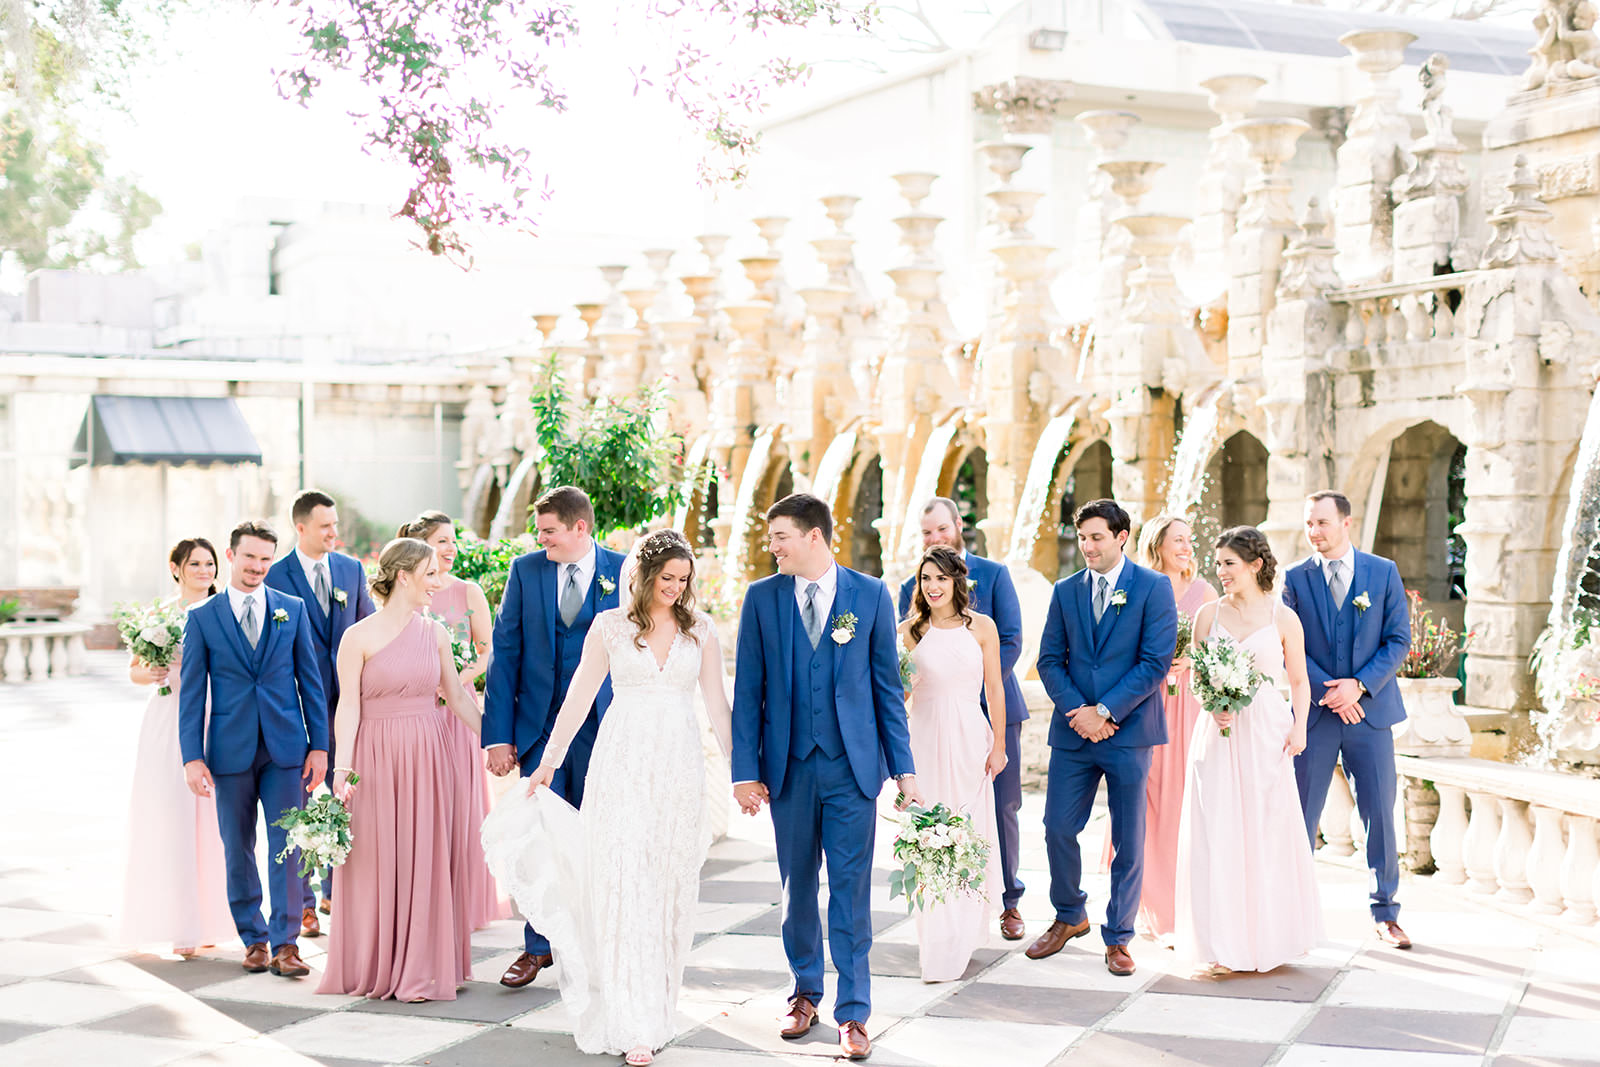 Florida Bride and Groom with Wedding Party in Outdoor Garden Courtyard, Bridesmaids in Mix and Match Pink Dresses, Groomsmen in Navy Suits | Tampa Bay Wedding Photographers Shauna and Jordon Photography